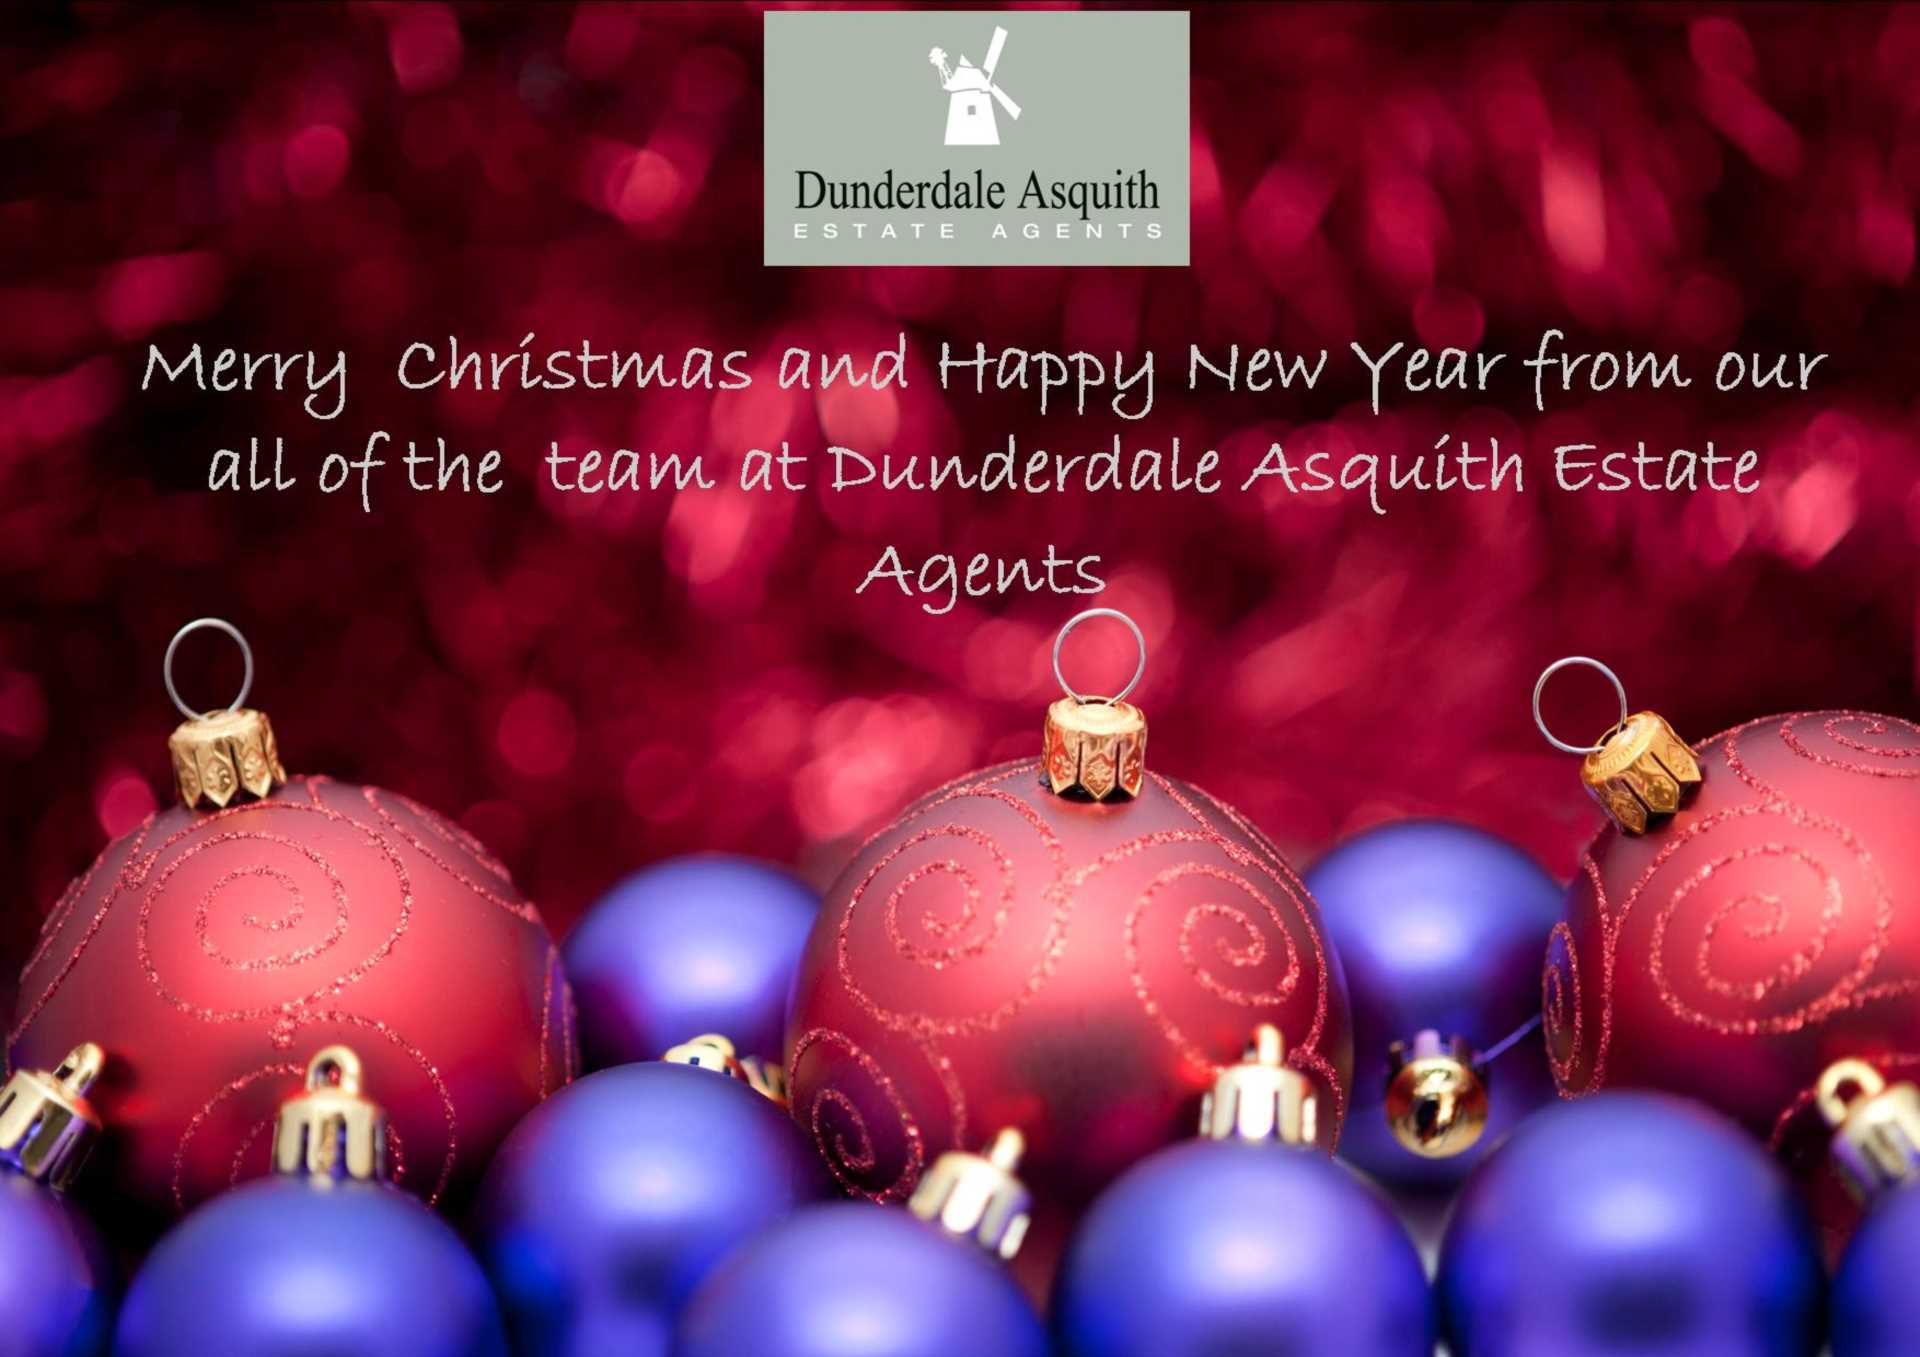 Merry Christmas and Happy New Year from all of the team at Dunderdale Asquith Estate Agents